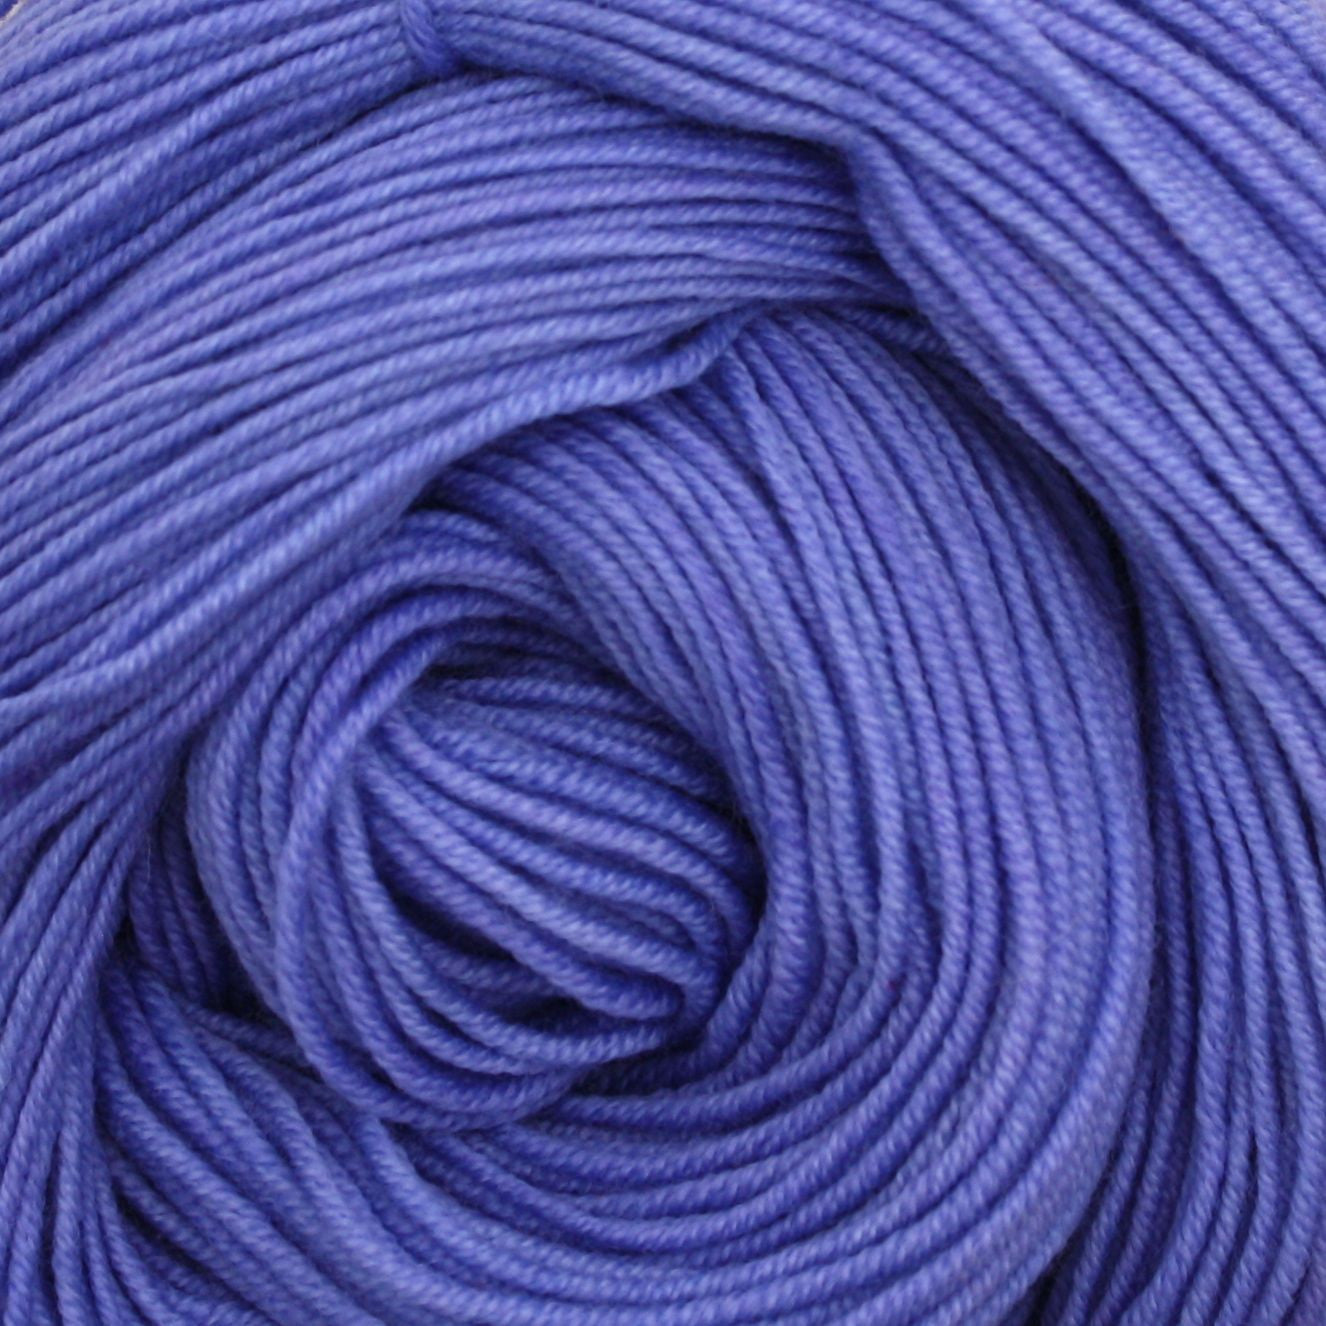 Aspen Sport Yarn | Colorway: Columbine